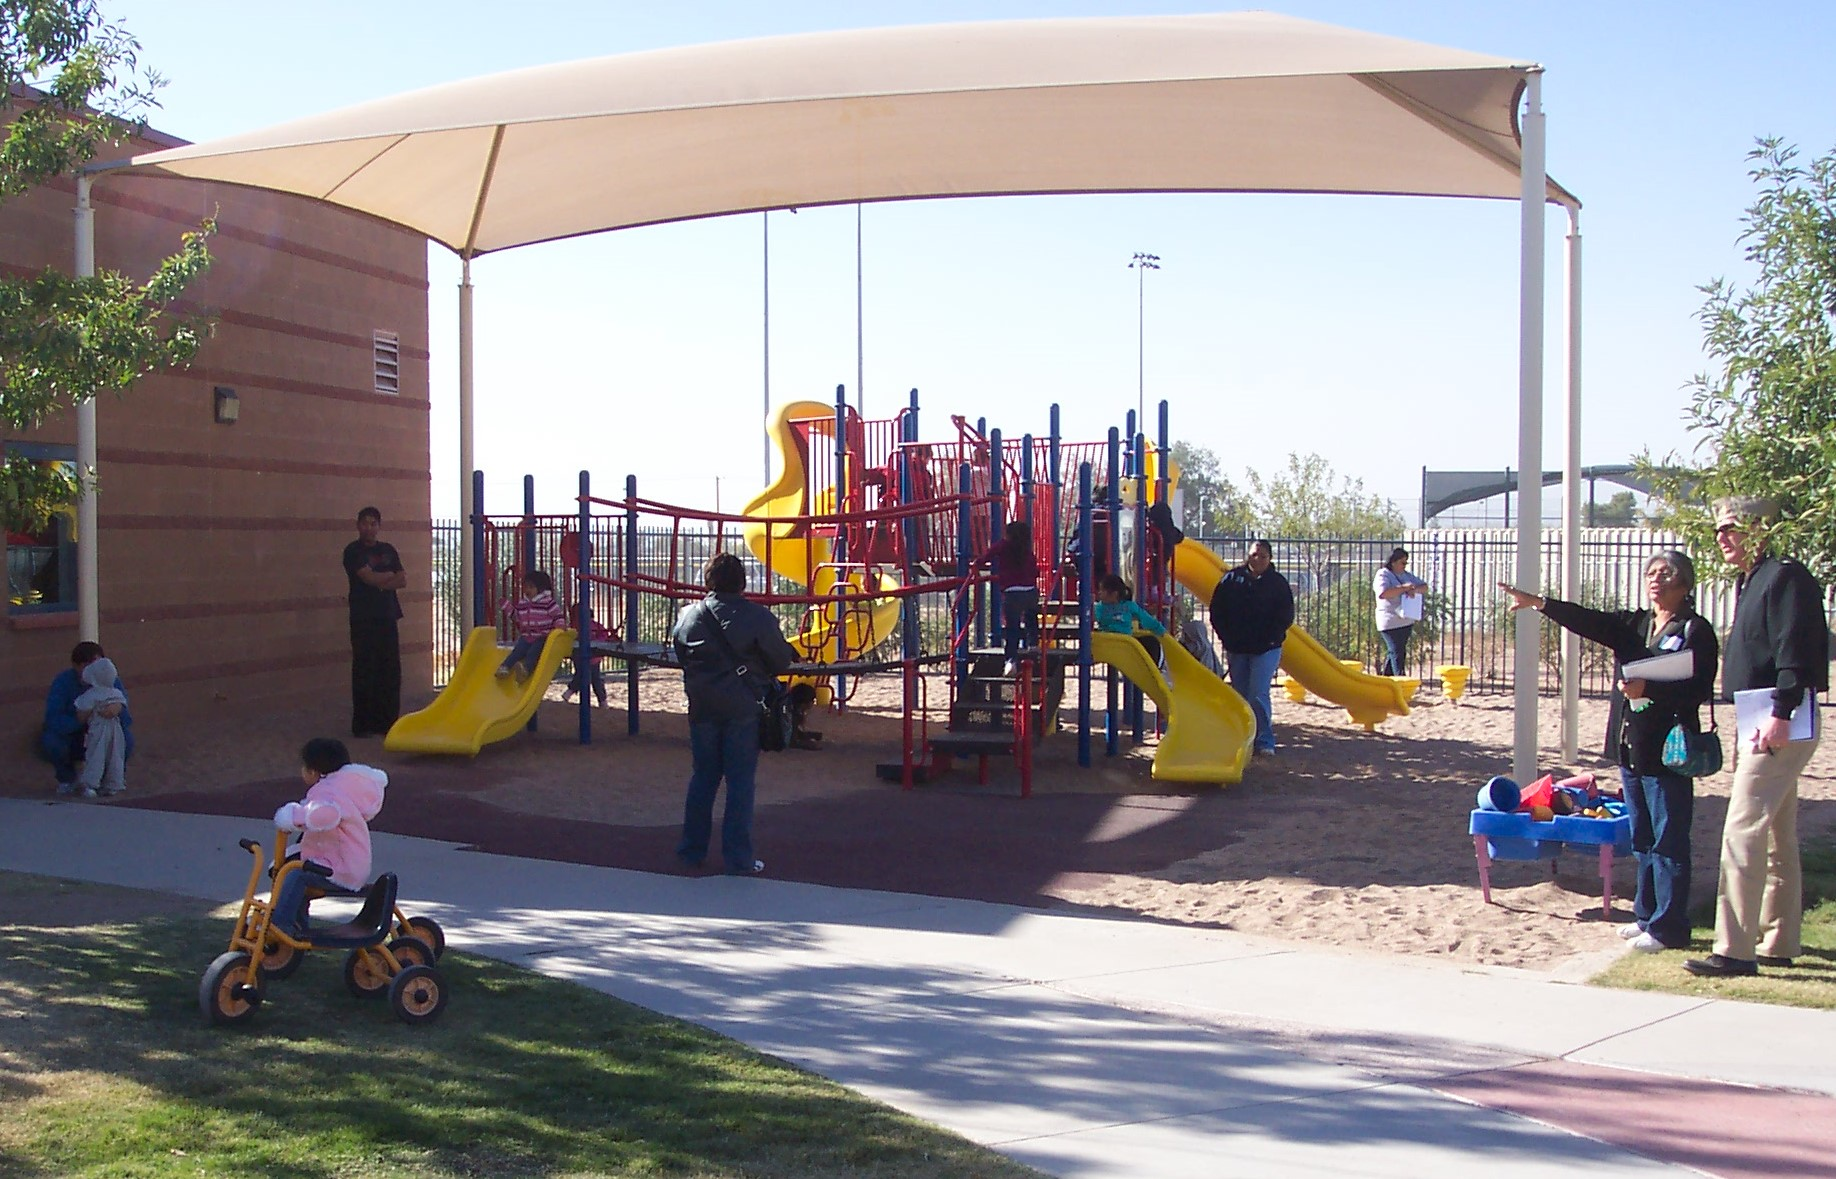 Shade at a play space